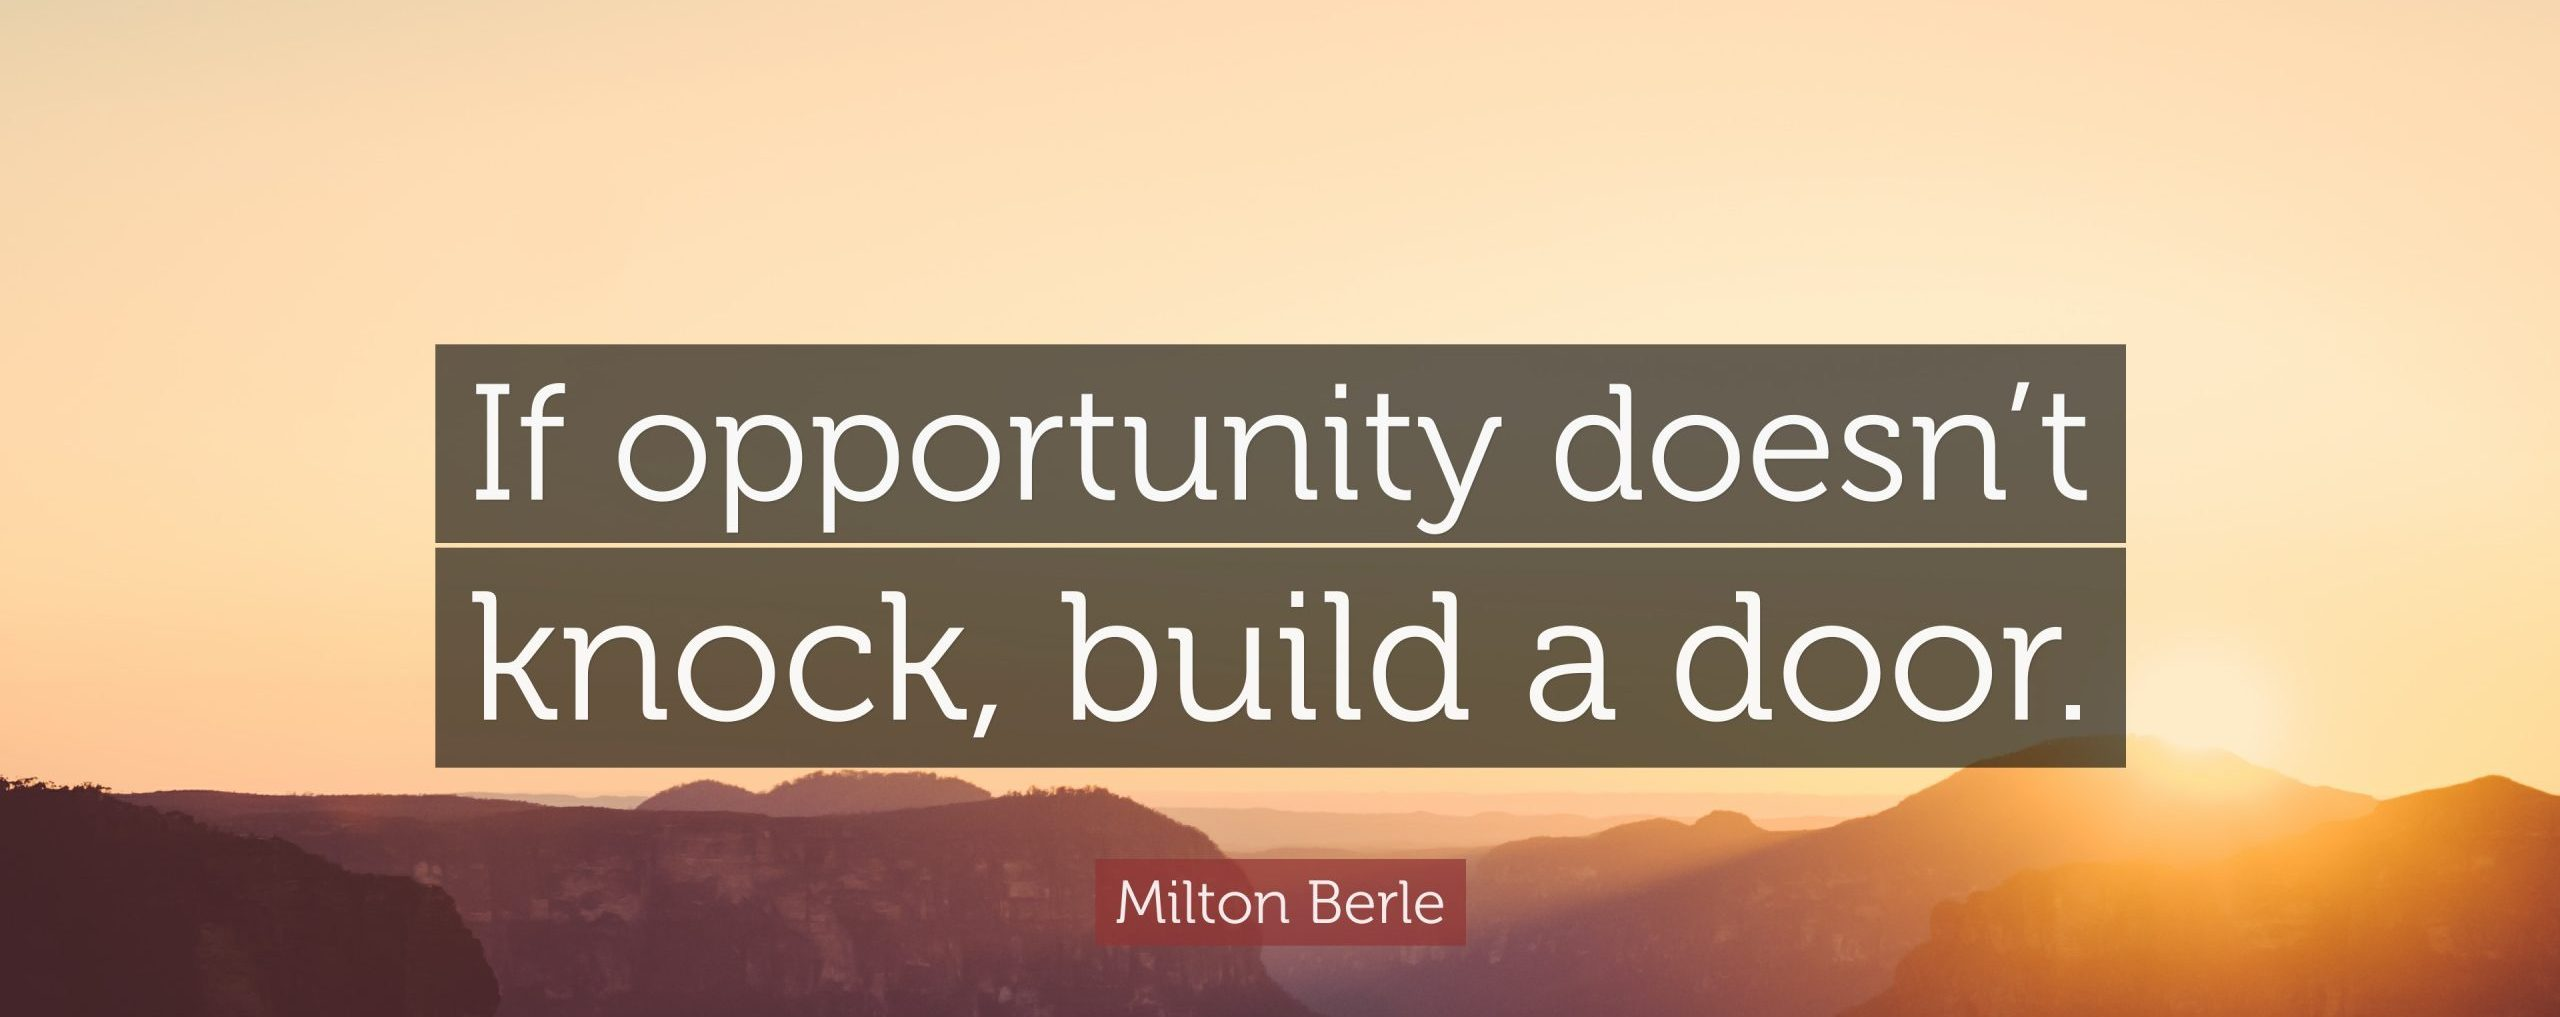 You are currently viewing Build door, if opportunity doesn't knock.